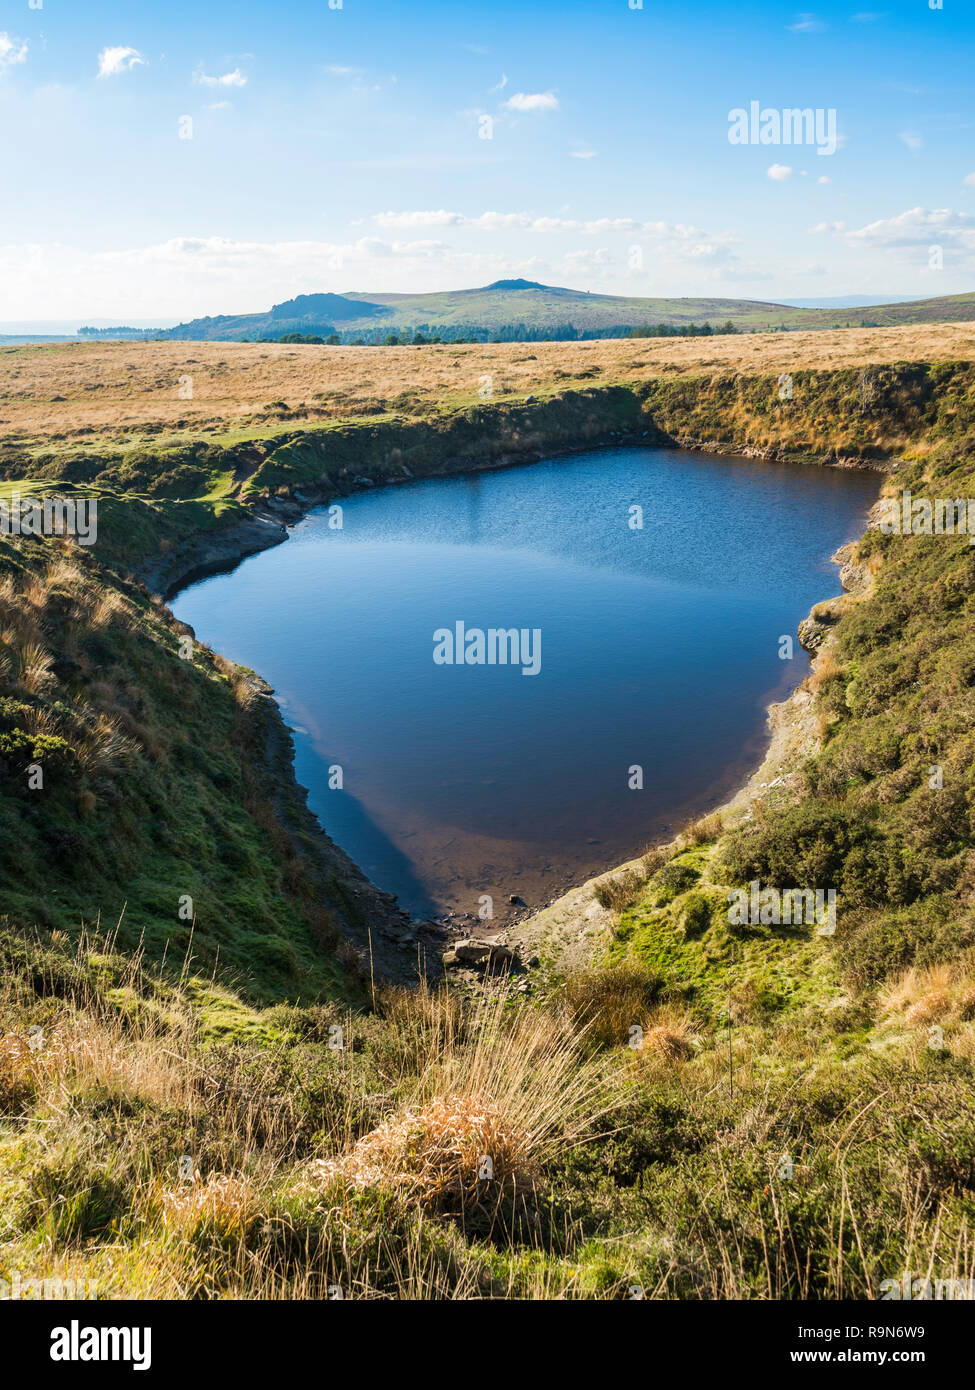 Crazywell Pool is a large pond on the western side of Dartmoor, near Burrator Reservoir.  It is a popular walking destination. - Stock Image